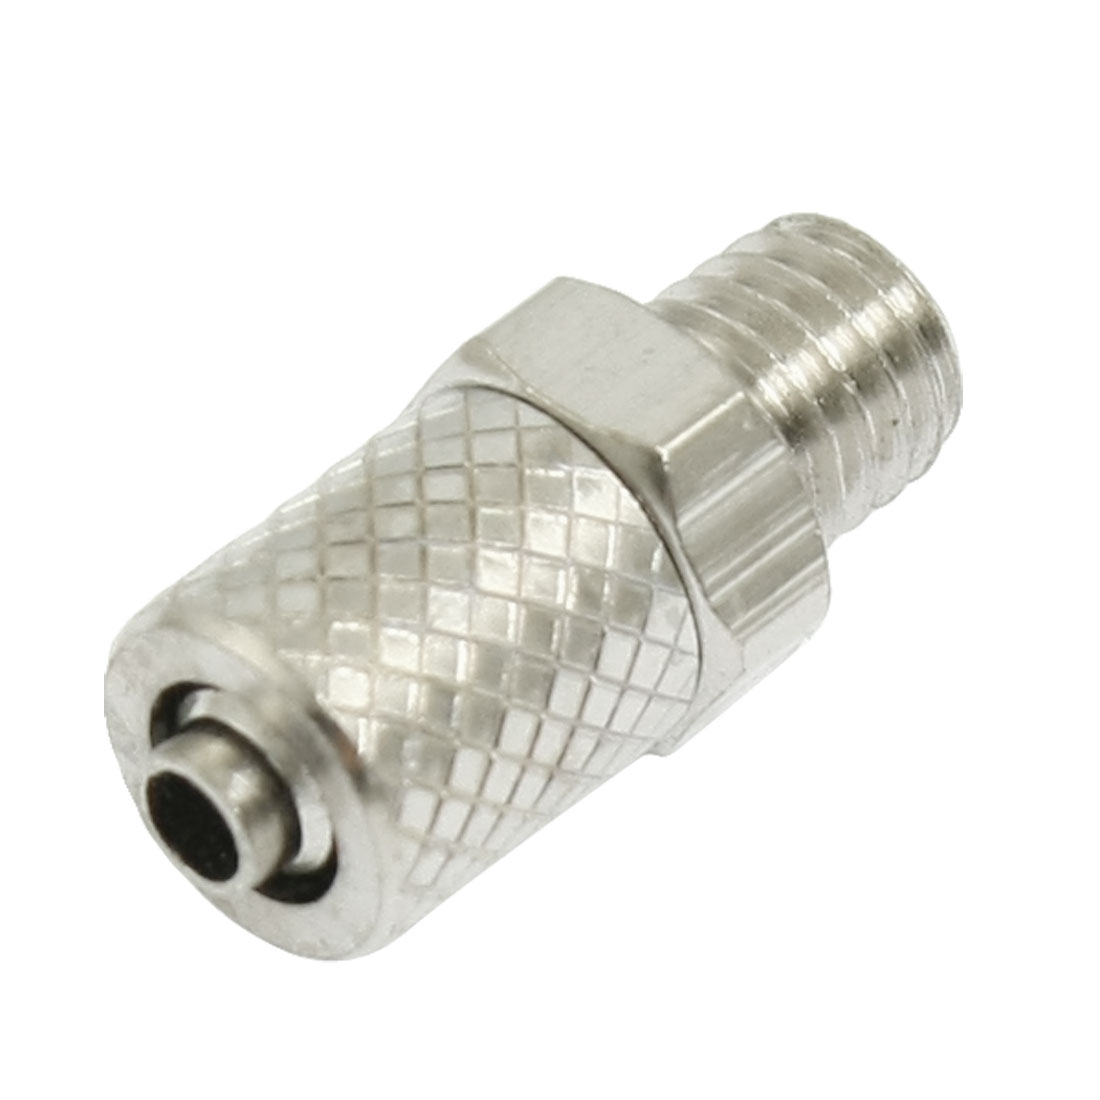 5mm Male Thread 2.5mm x 4mm Tube Air Pneumatic Quick Connector Coupler